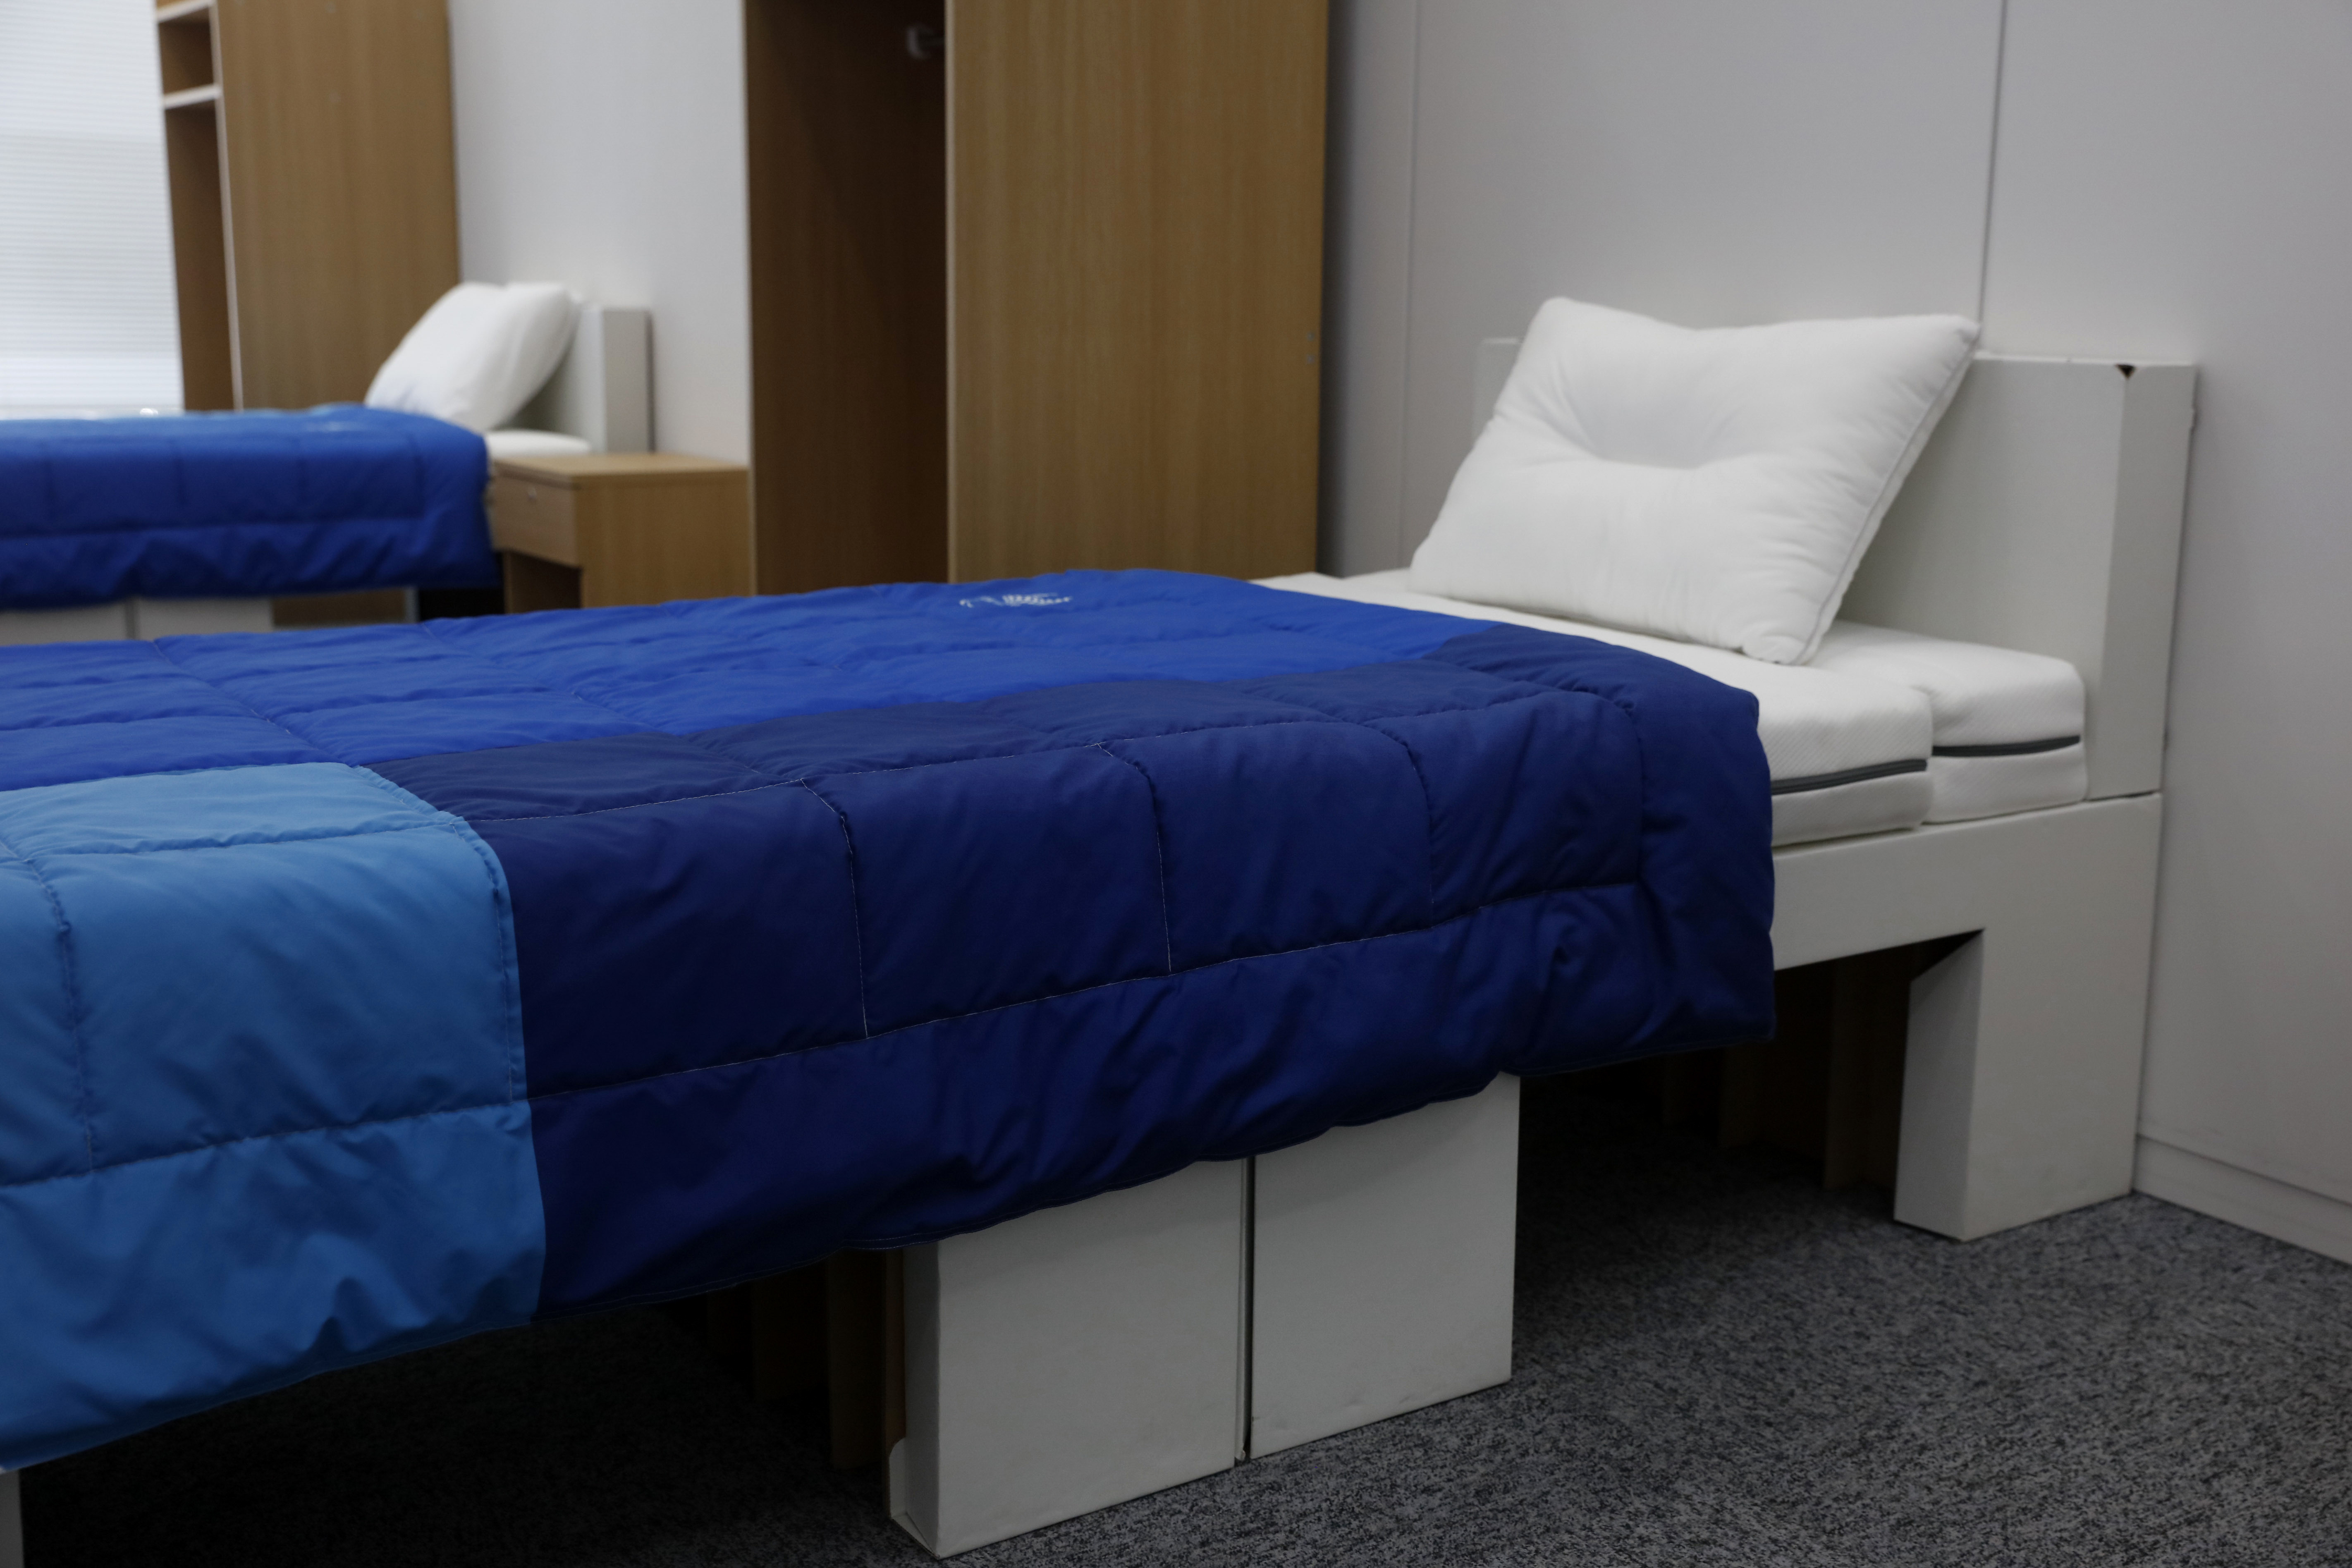 Two sets of bedroom furniture, including cardboard beds, to be used in the Athletes' Village at the Tokyo 2020 Olympic and Paralympic Villages are shown in a display room on Jan. 9, 2020, in Tokyo.